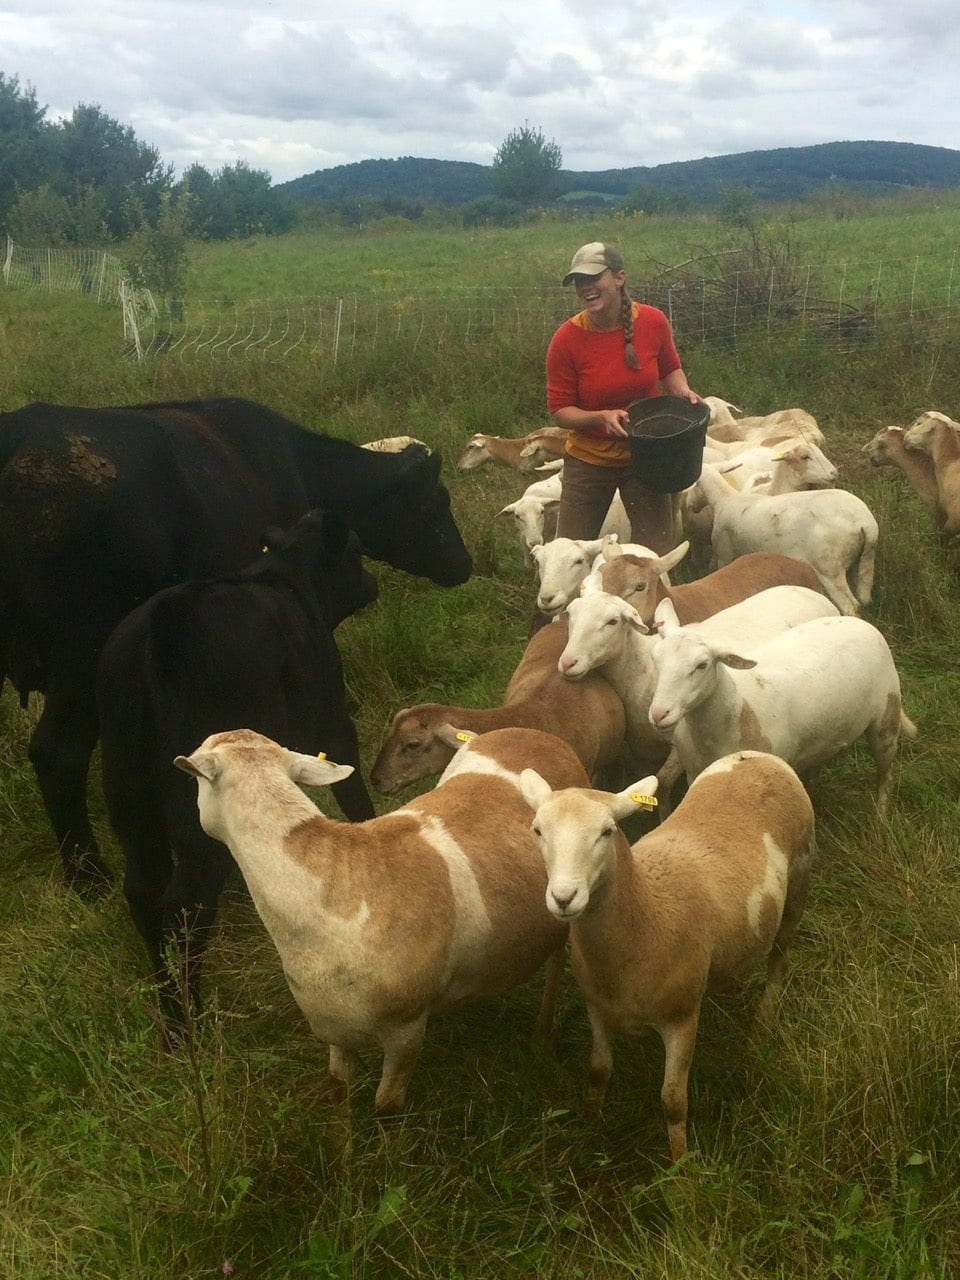 a person stands in a field holding a bucket, surrounded by cattle and goats